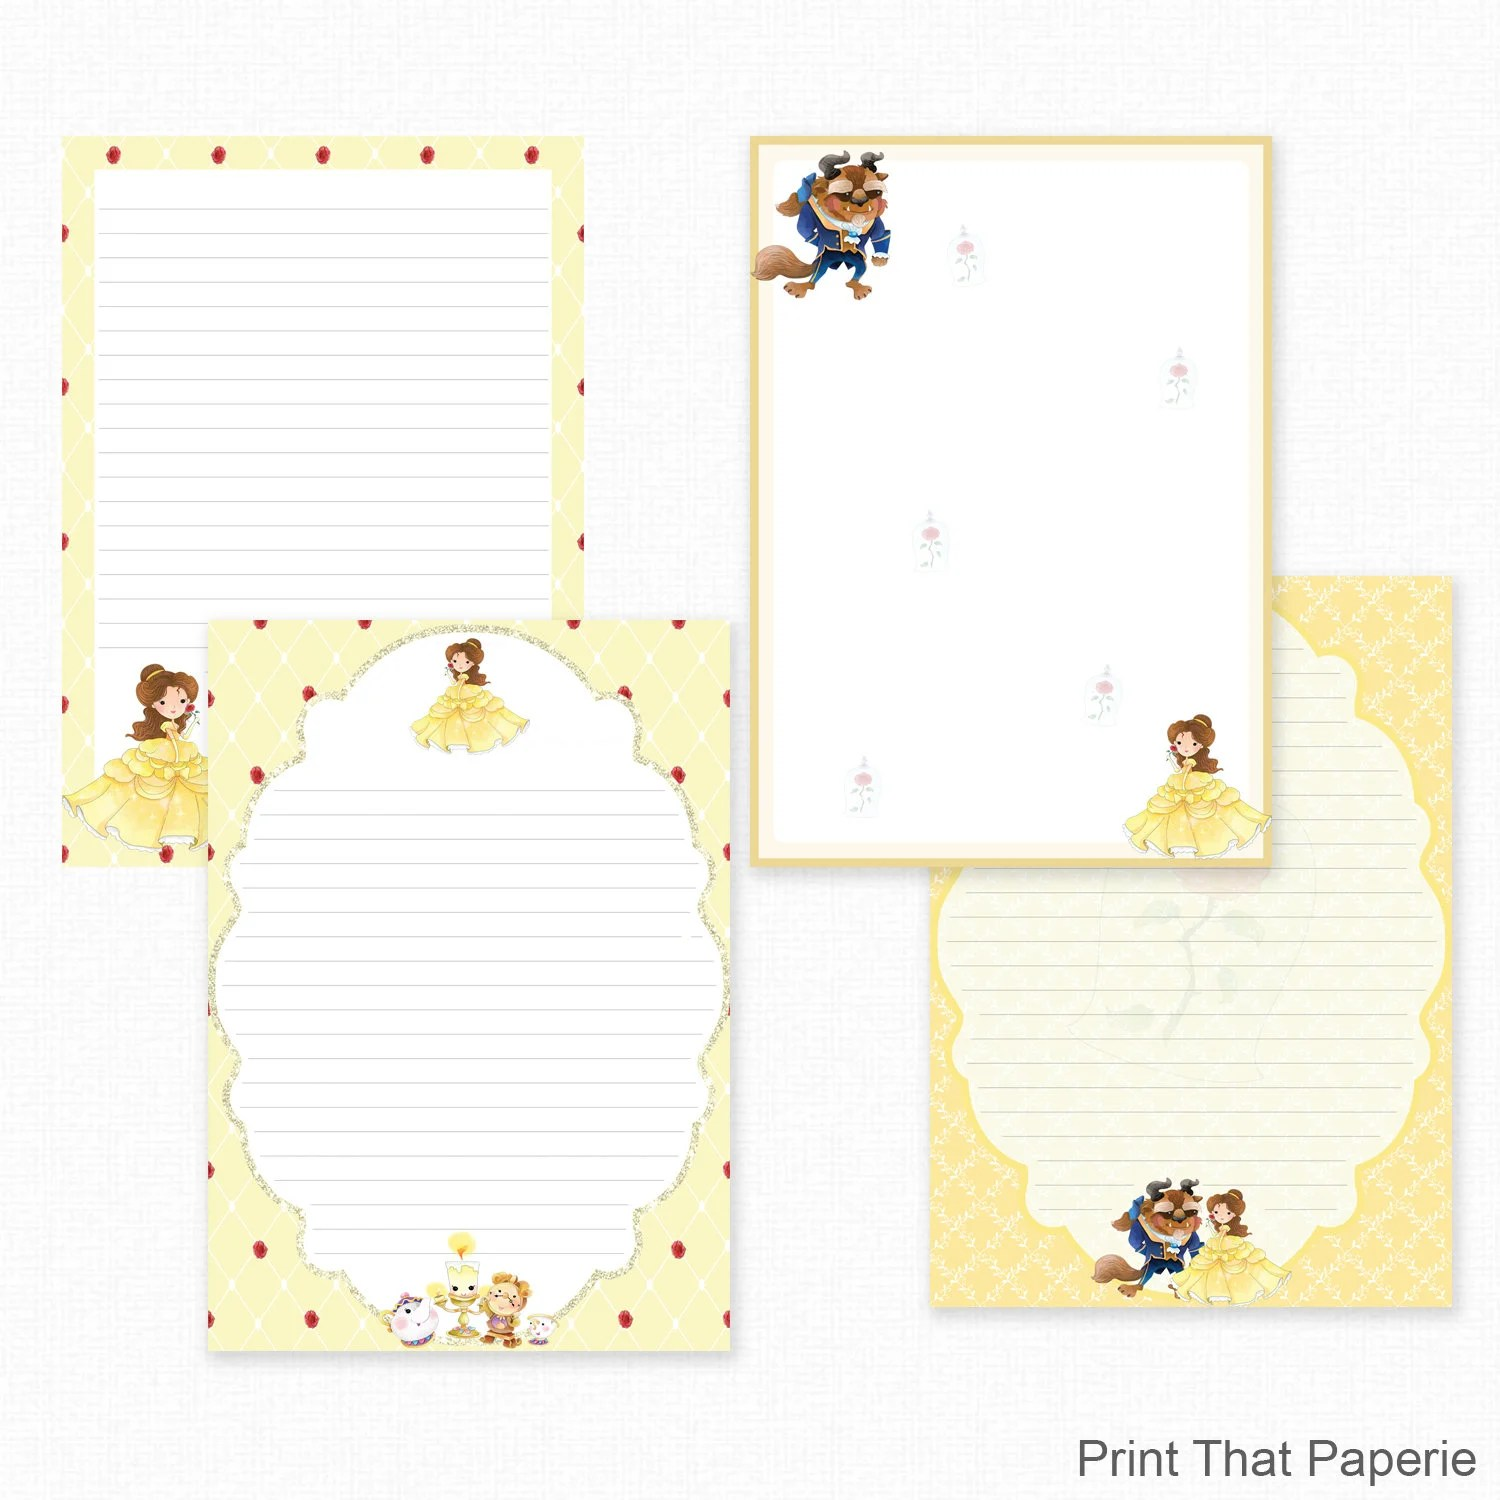 Beauty and the Beast Printable Writing Paper - Stationary Paper - print writing paper